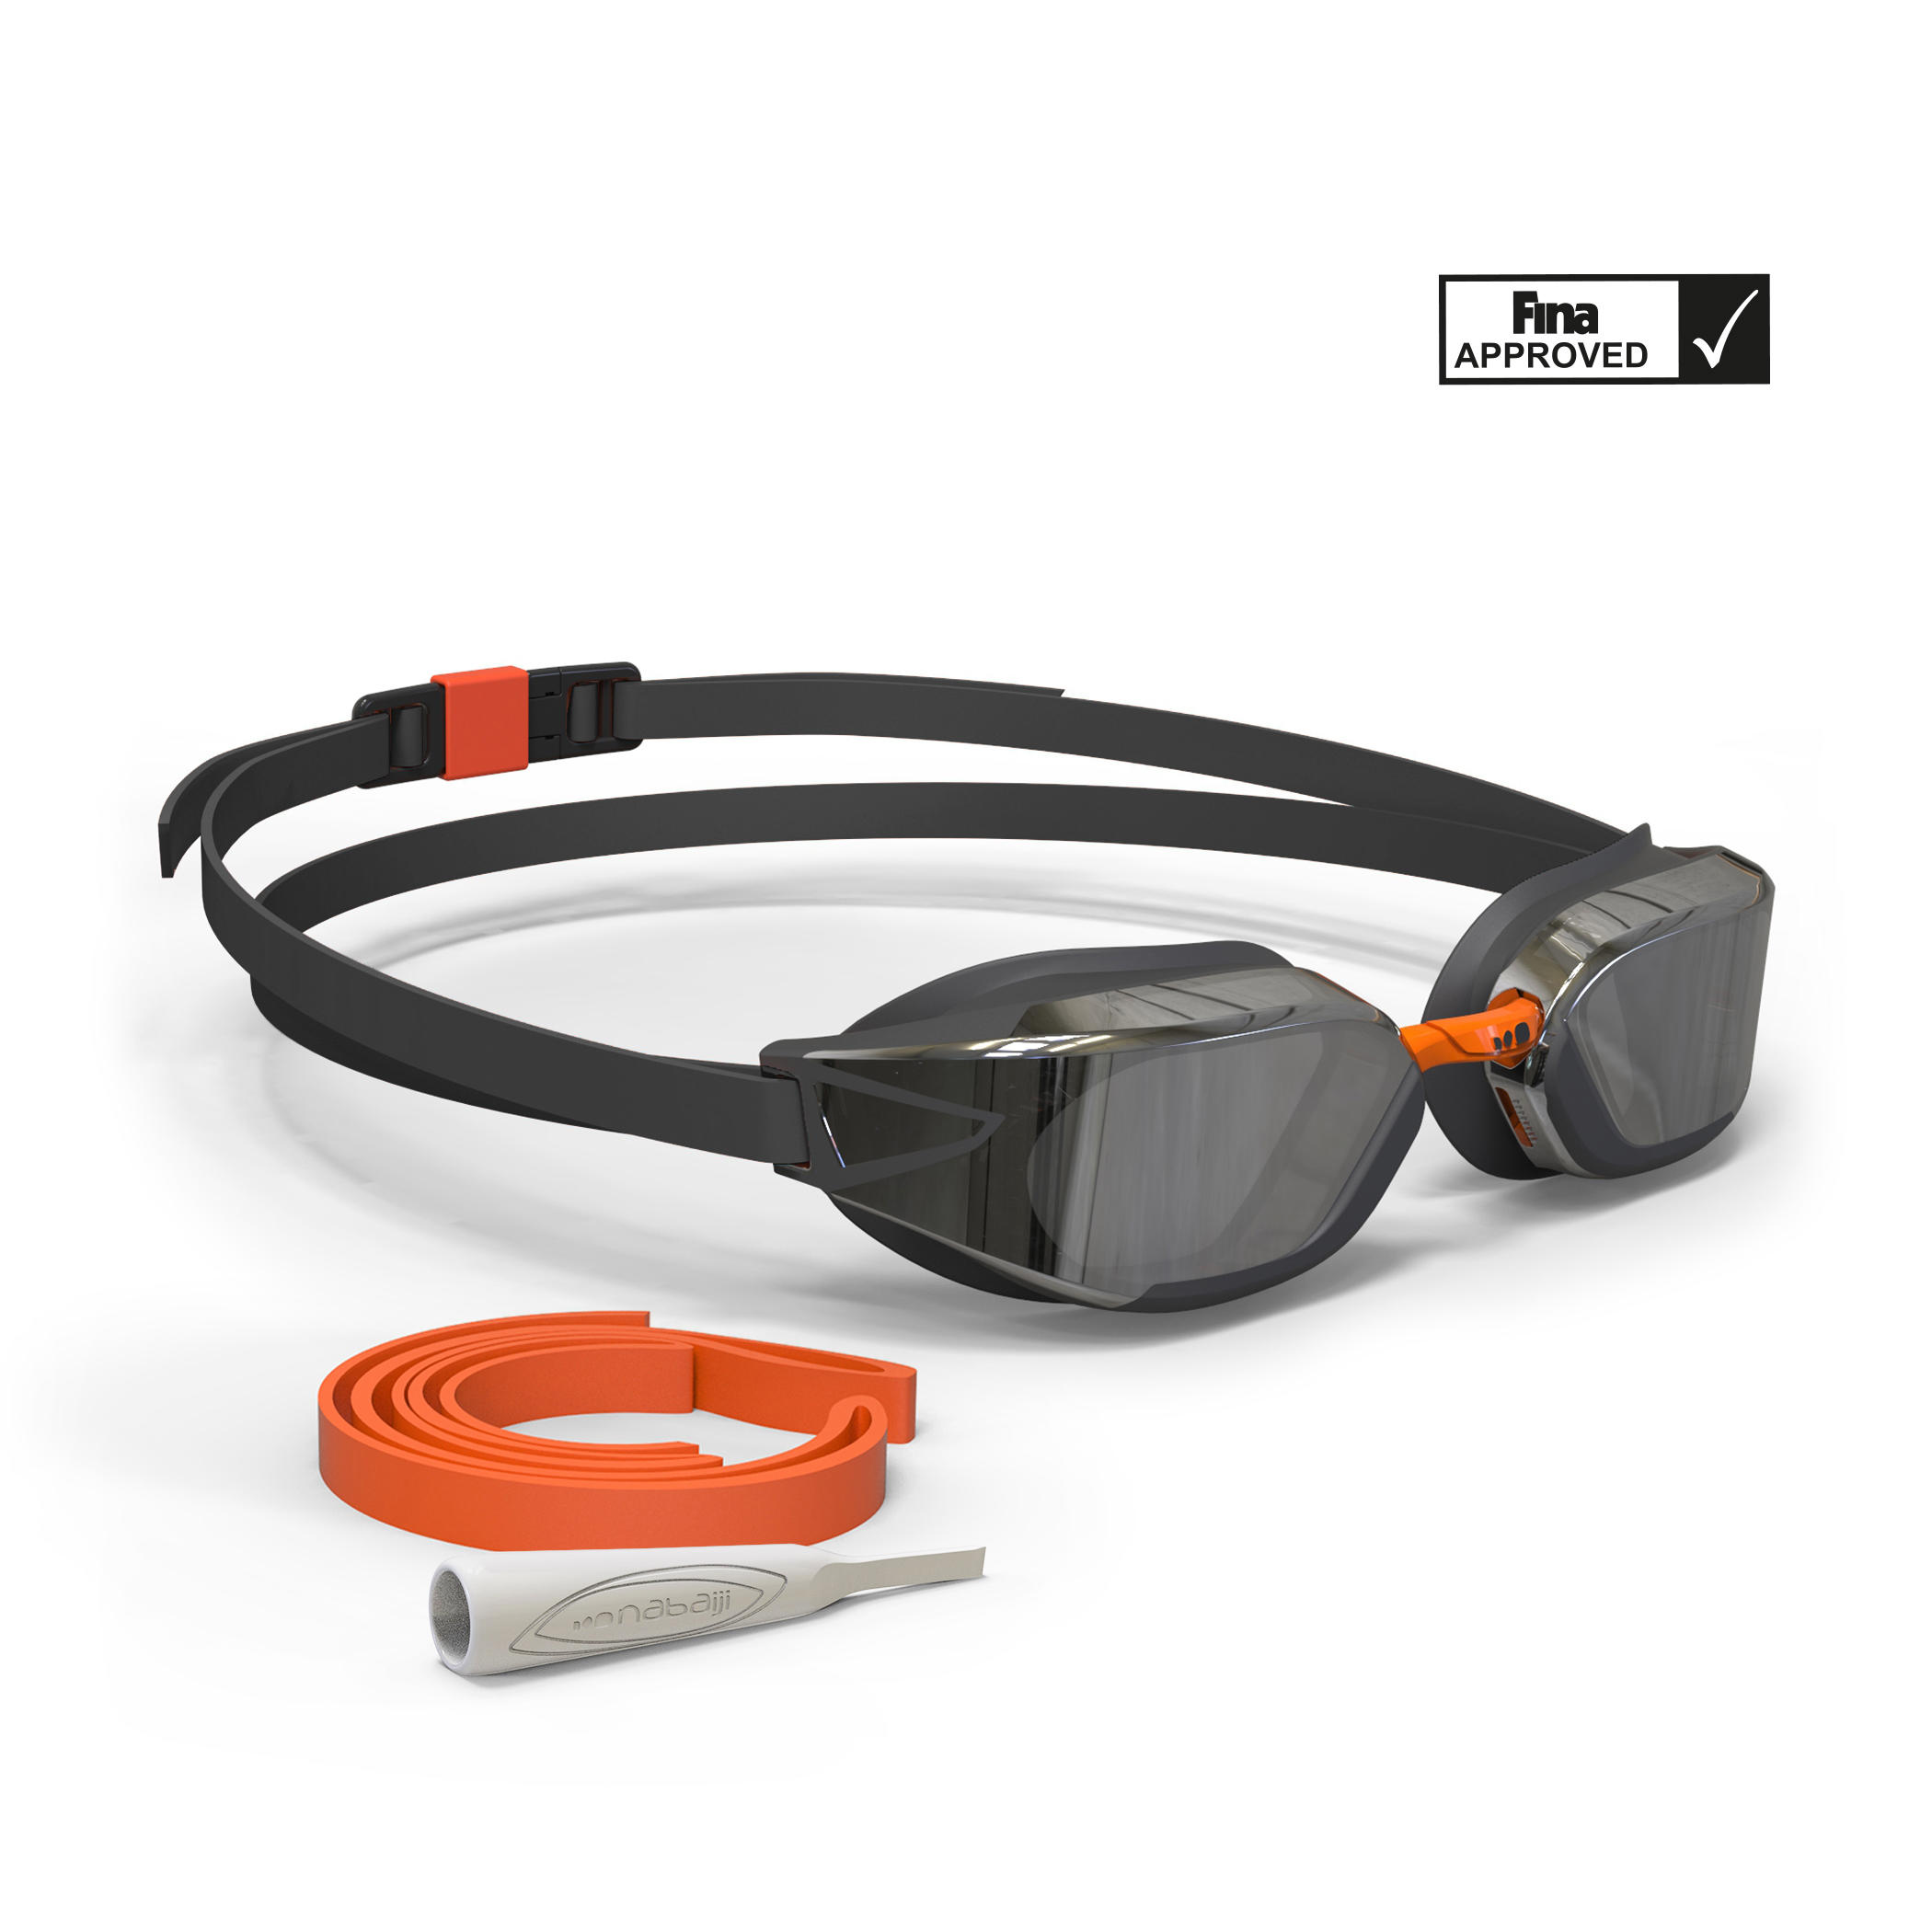 B-Fast Swimming Goggles - Mirrored Black Orange